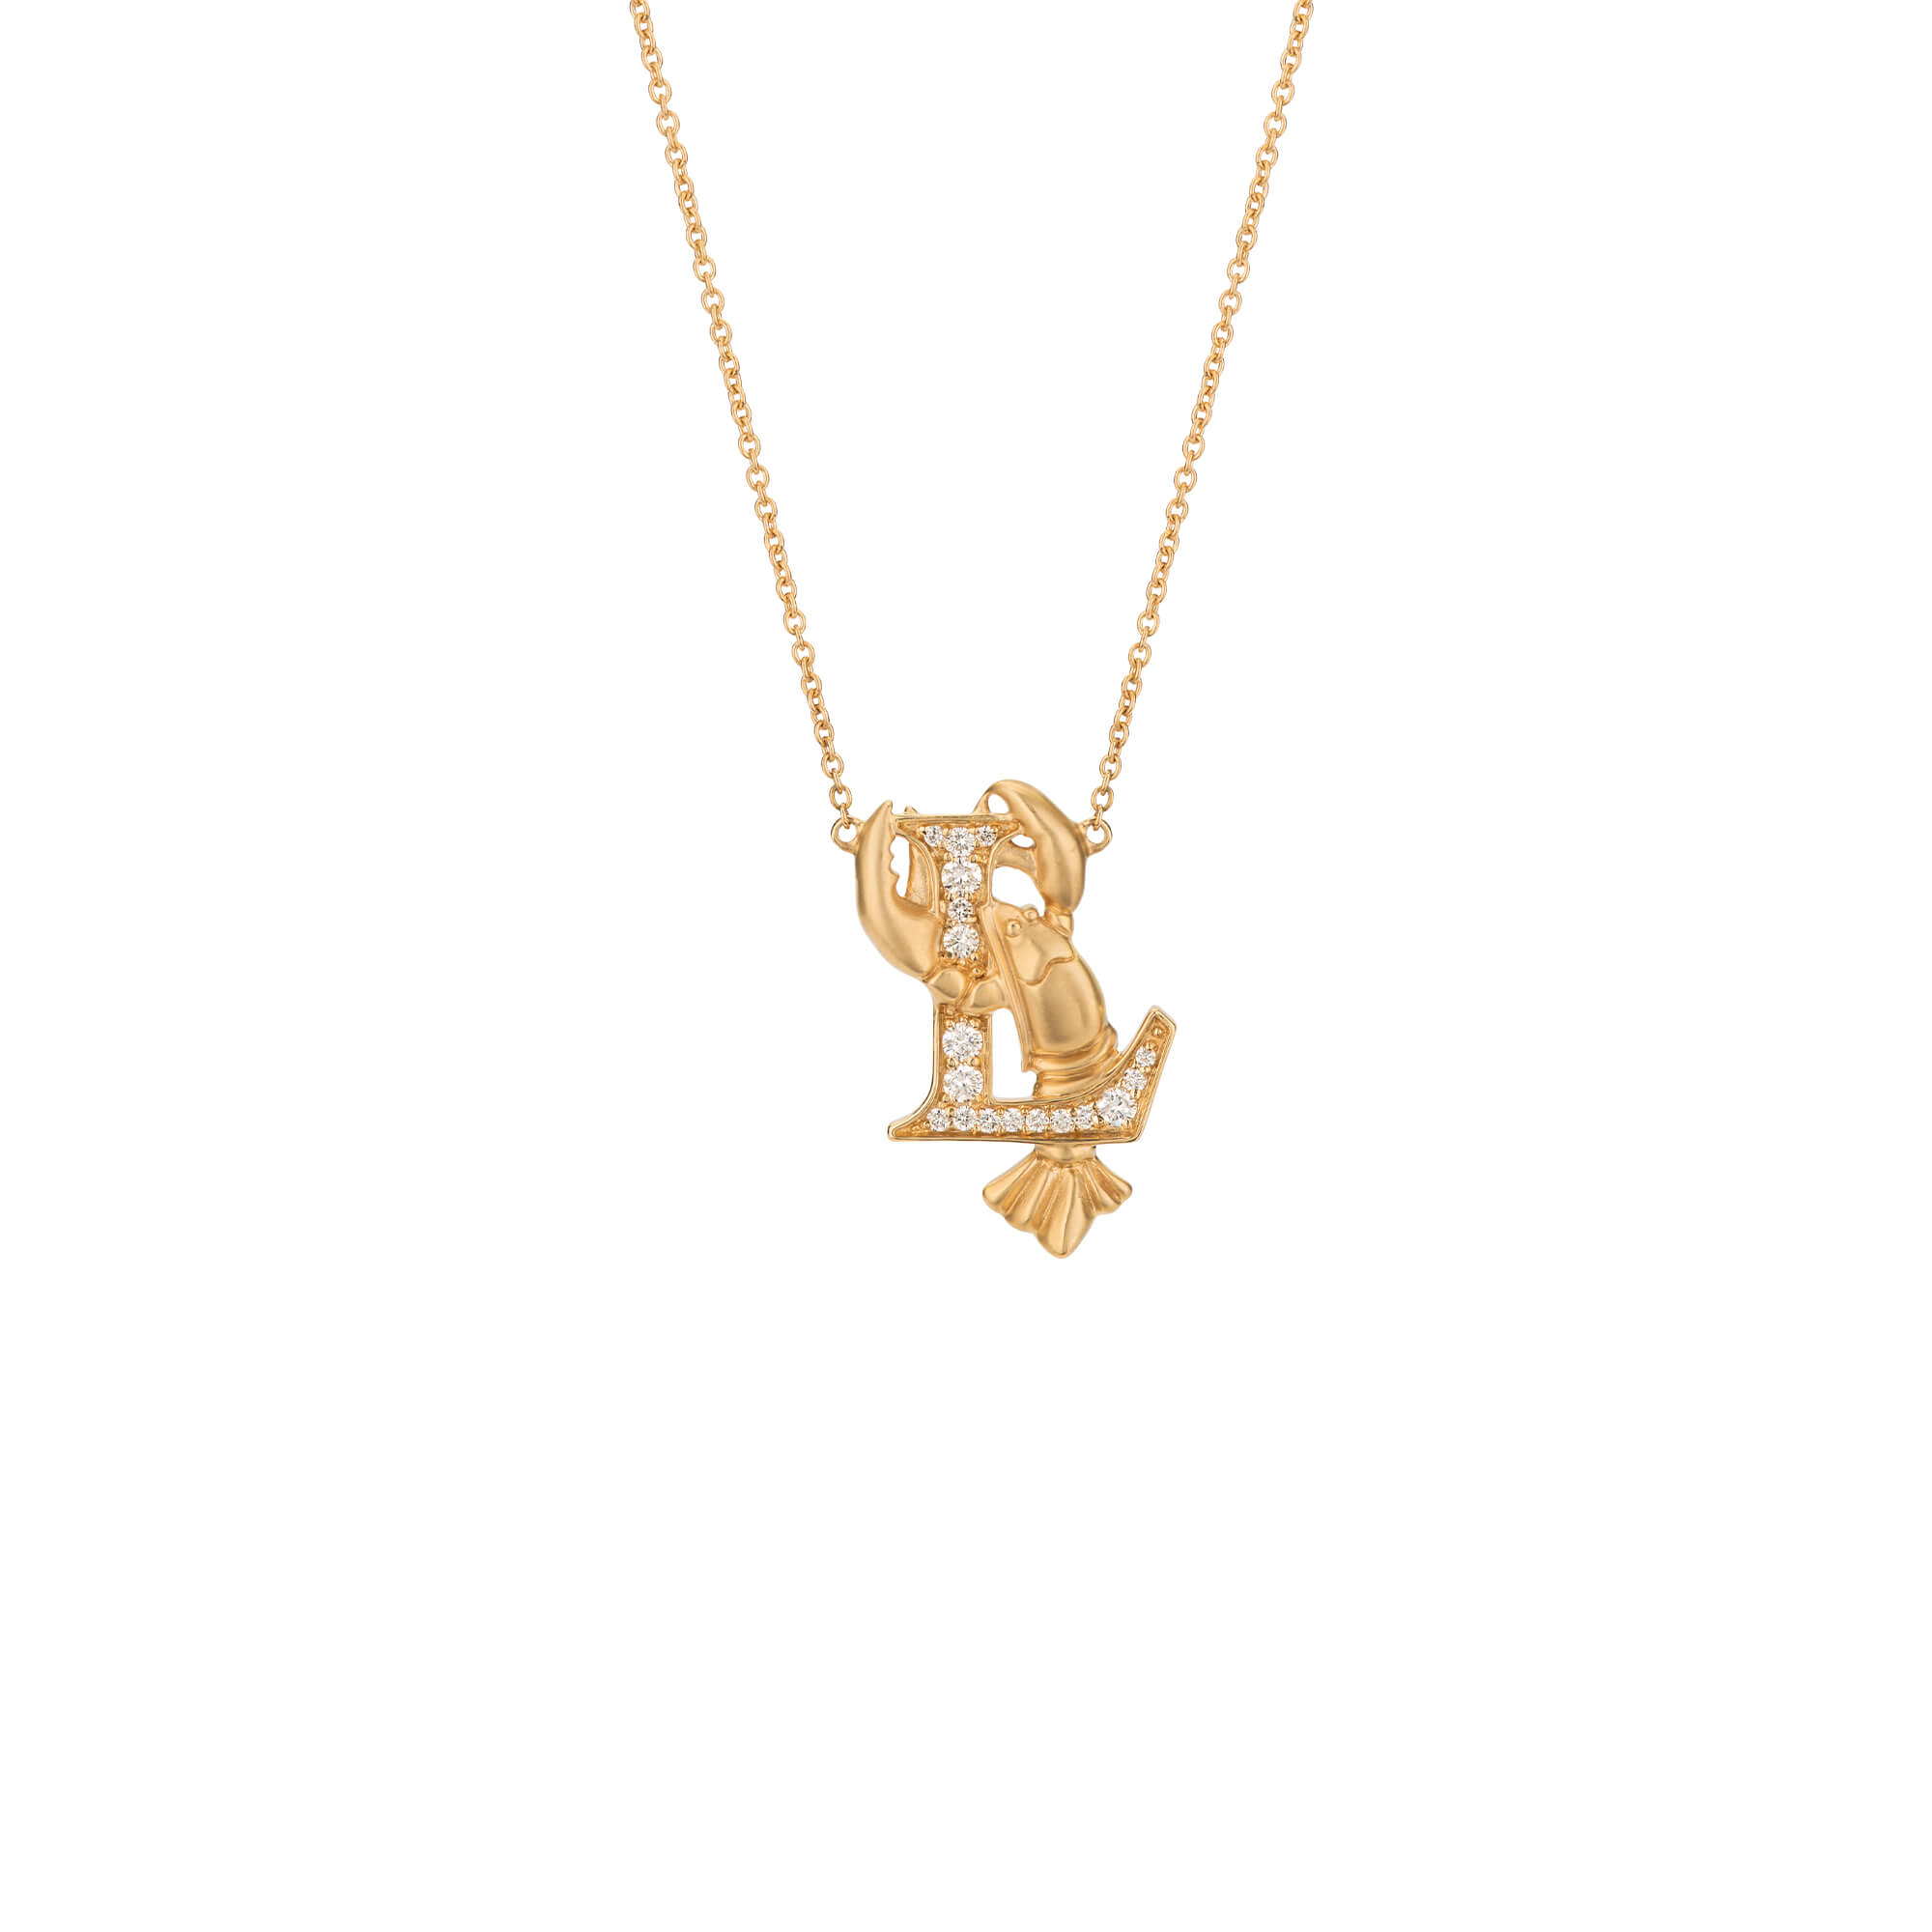 L is for Lobster Gold Necklace | Fish Tales